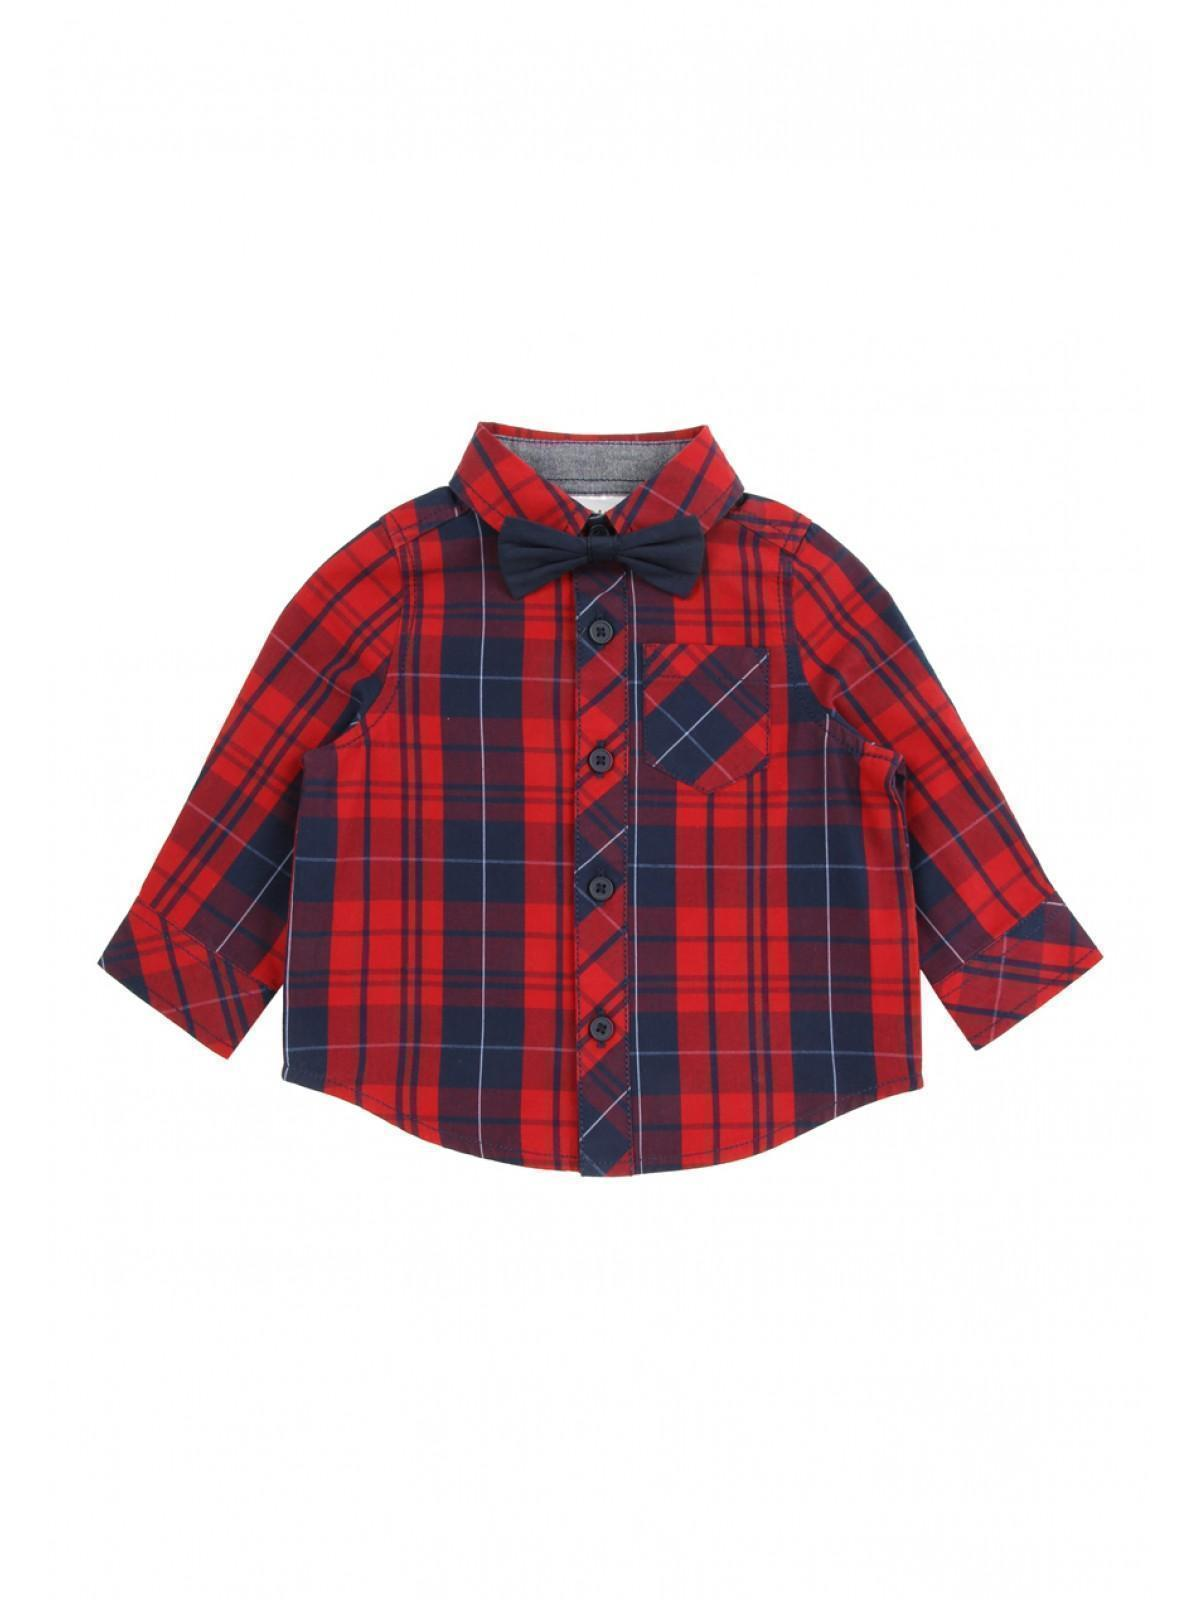 c3db1bf13a96 Home; Baby Boy Tartan Shirt And Bowtie. Back. PreviousNext